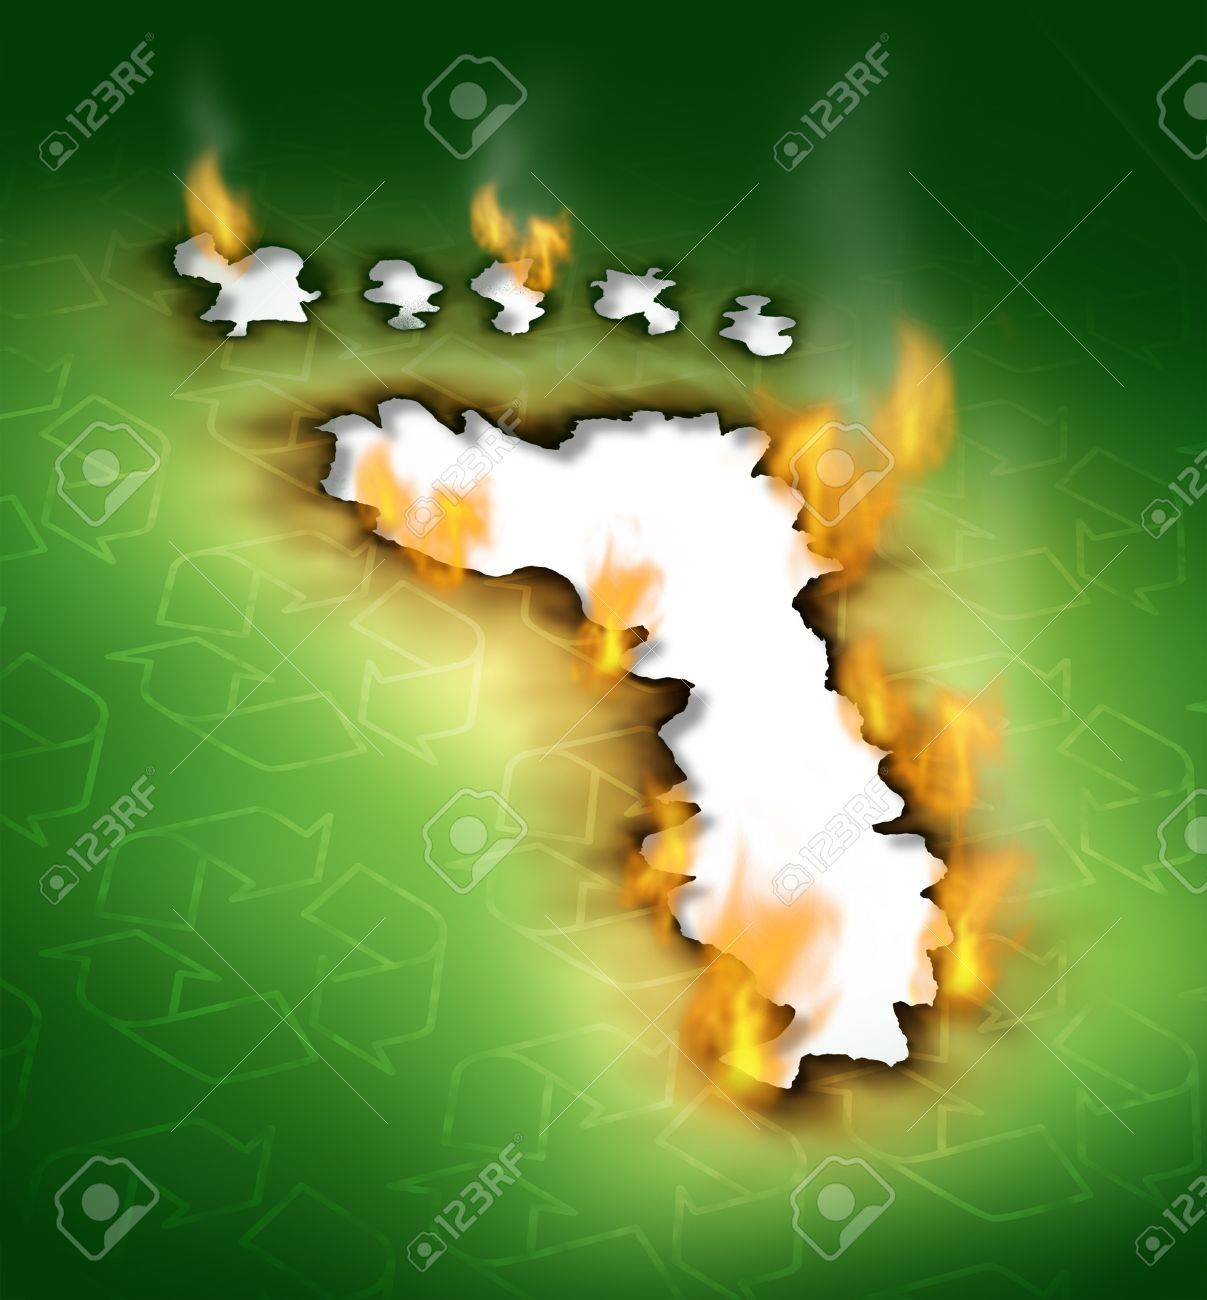 Conservation concept as a footprint hole with smoke damaged burnt green paper edges burning on fire with recycling symbols as an icon of global warming with nature and environmental pollution Stock Photo - 14730976